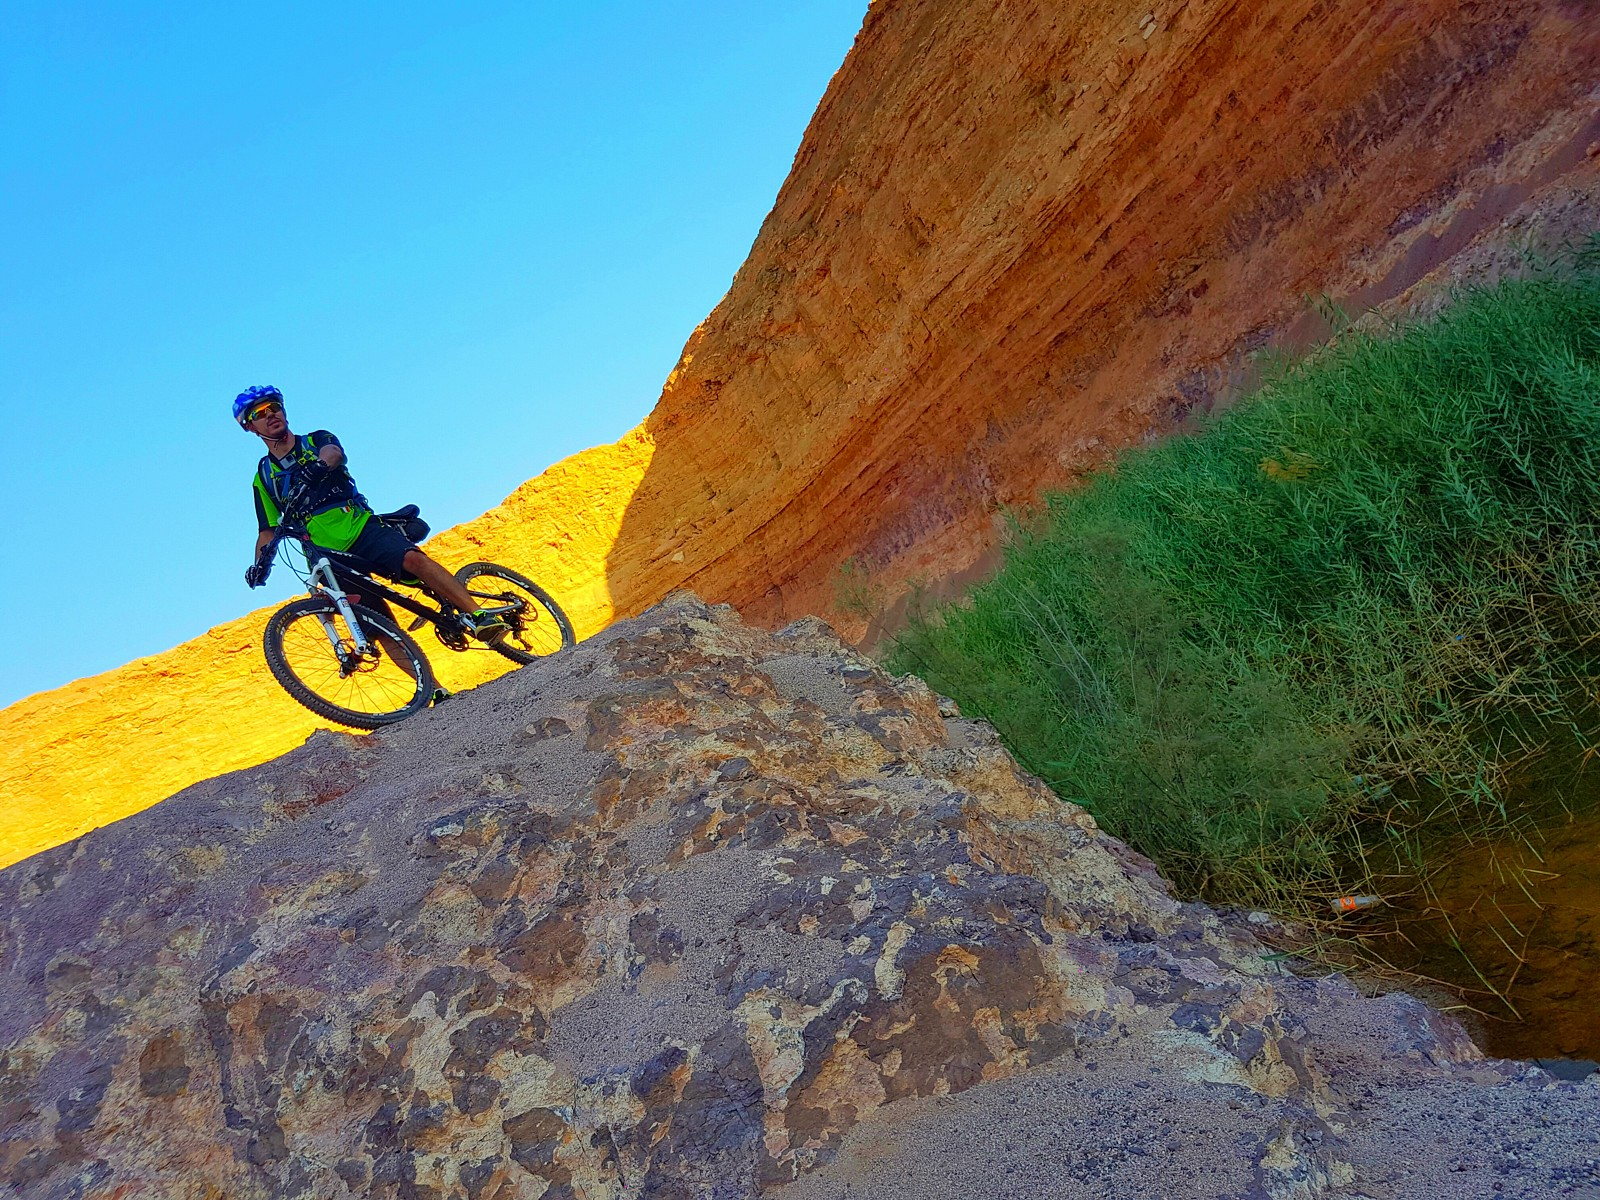 CYMERA 20190701 083749 - guy191184 - Mountain Biking Pictures - Vital MTB